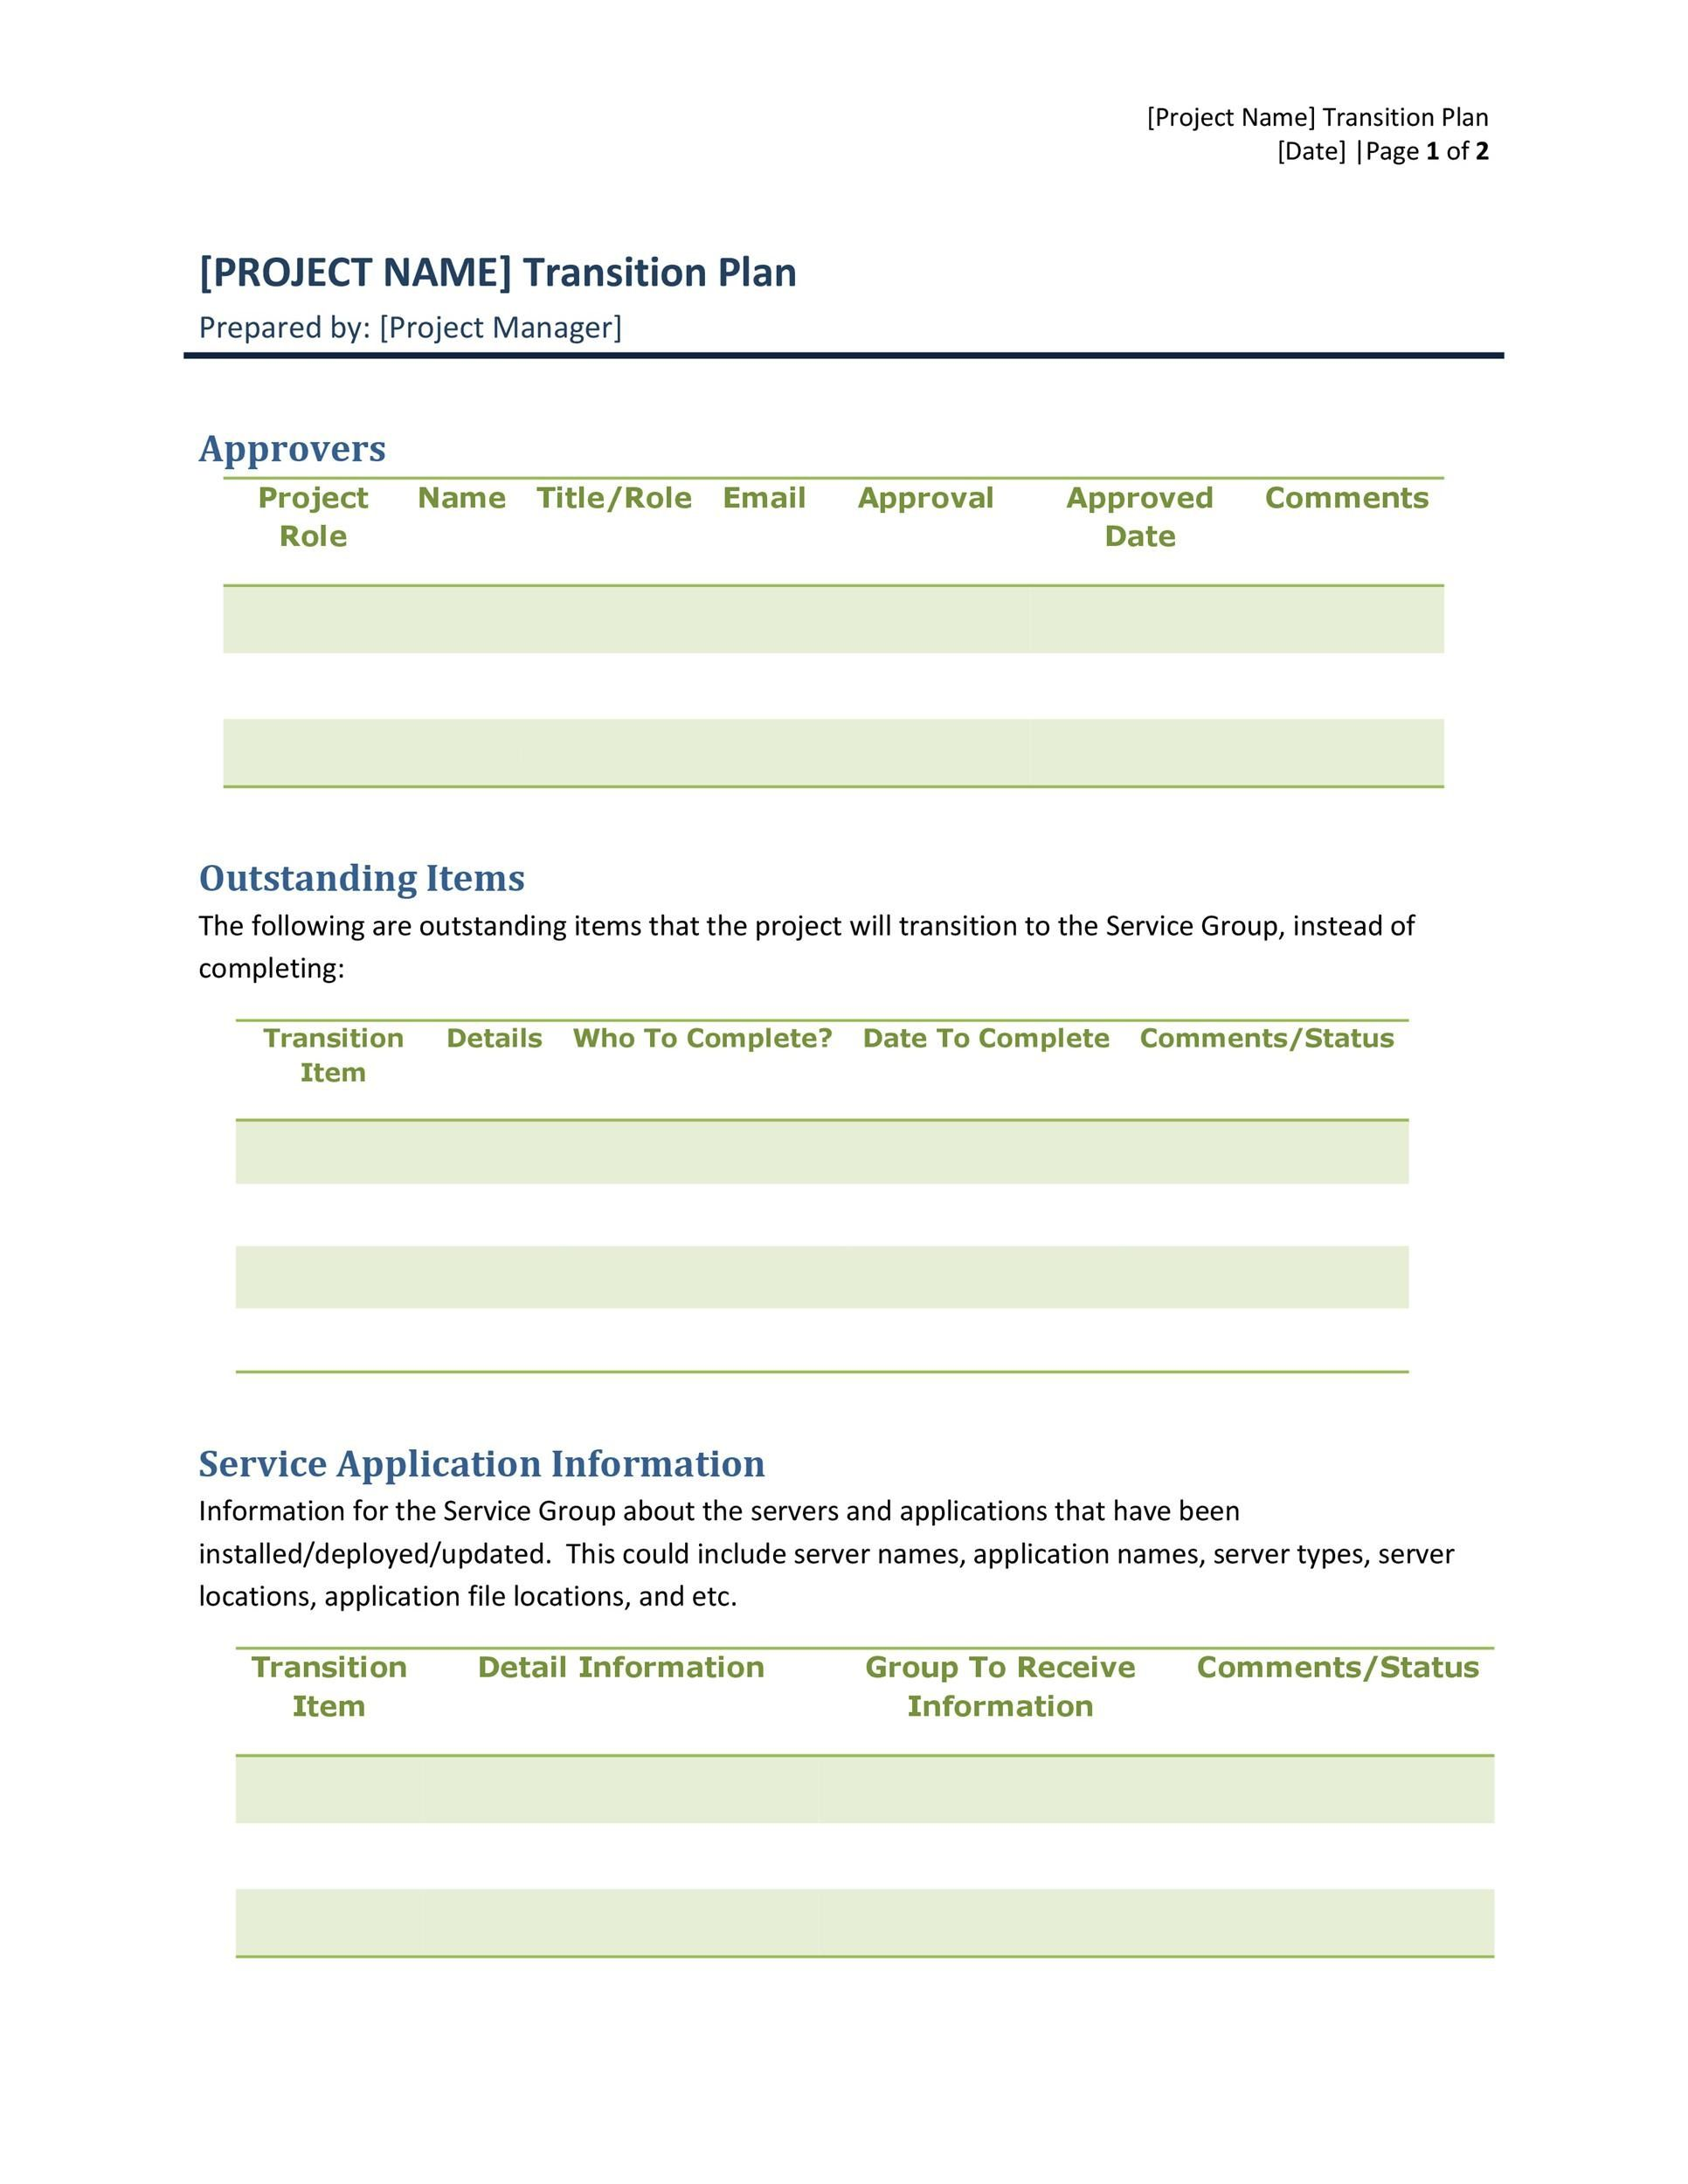 002 Phenomenal Project Transition Out Plan Template Image  Xl Excel DownloadFull